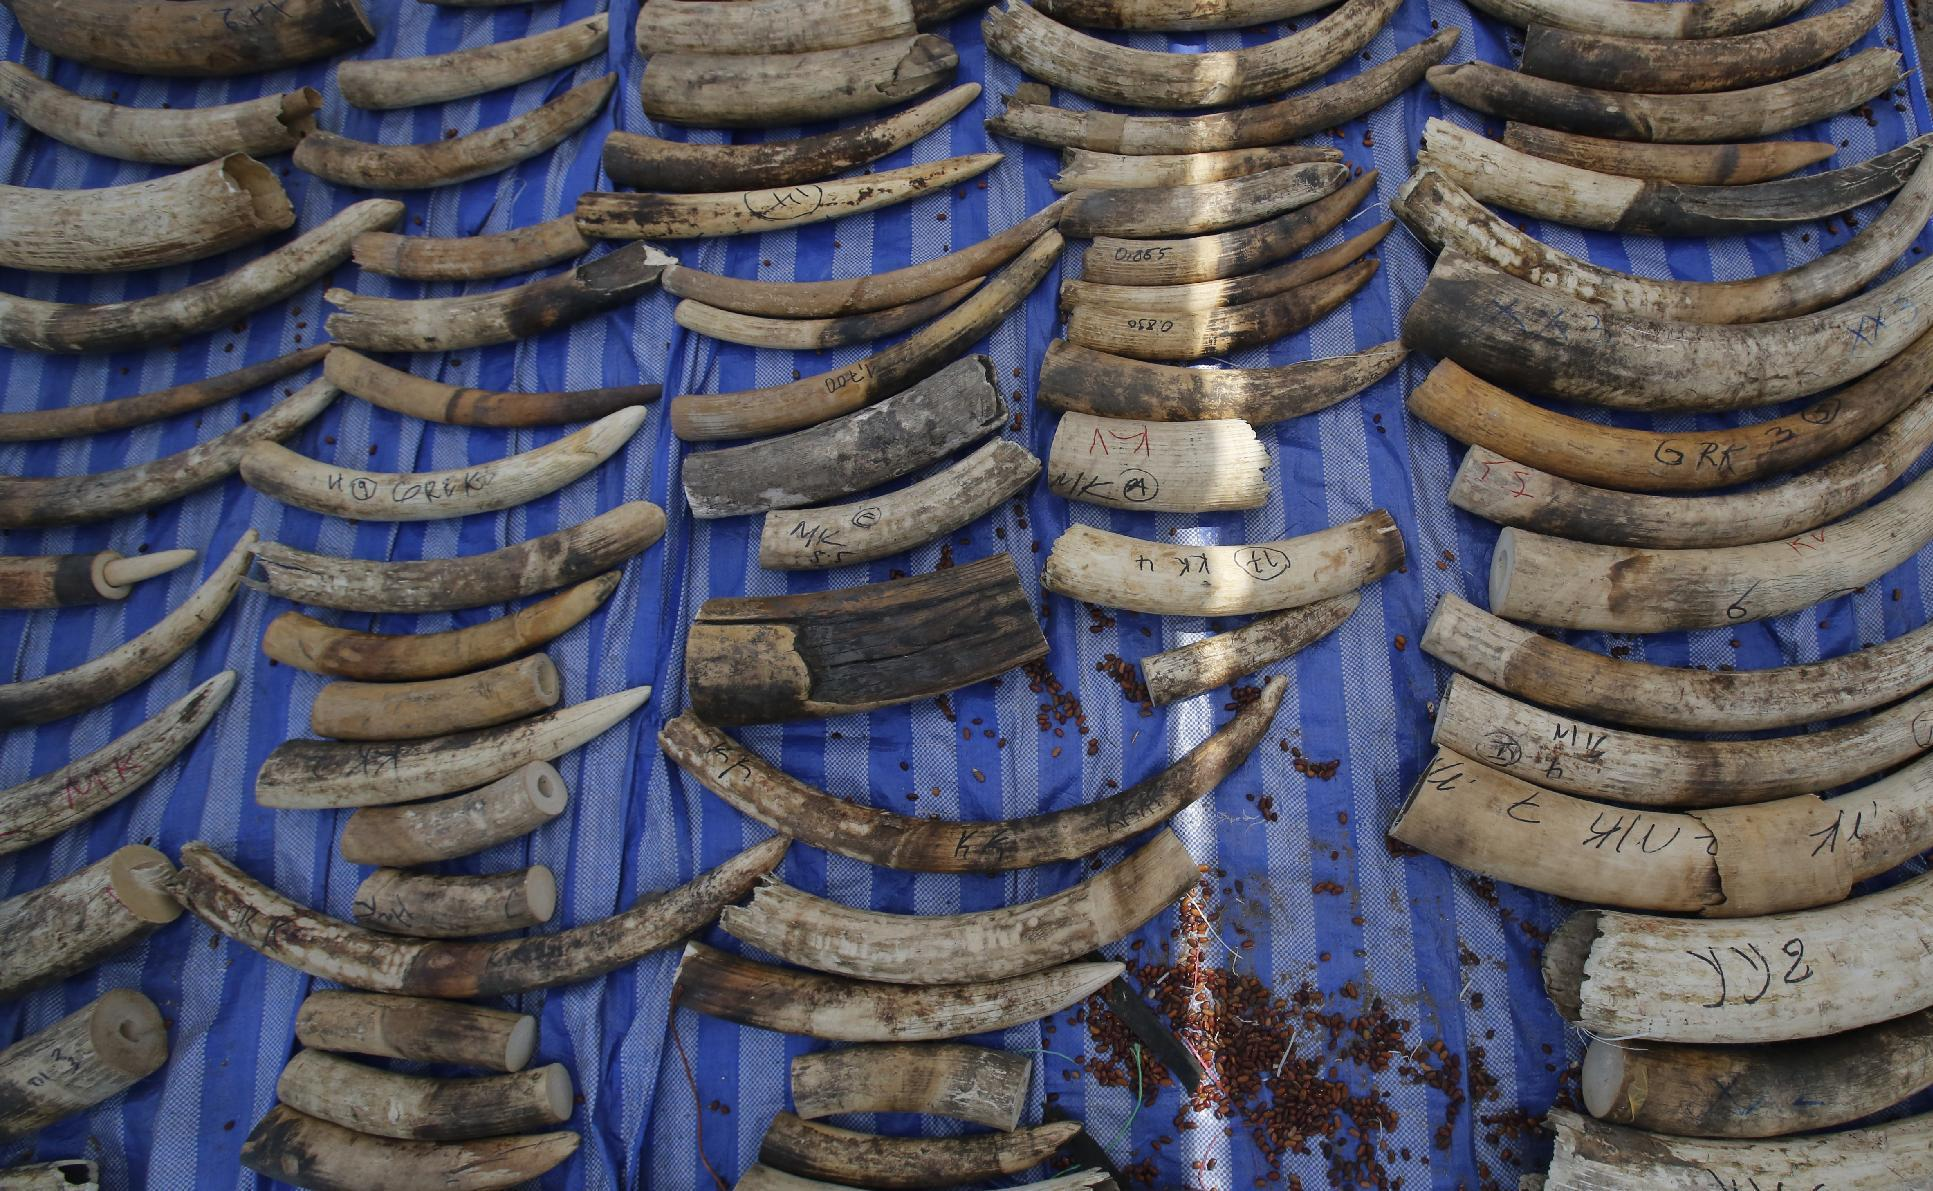 Four tons of elephant tusks seized by customs officials in Thailand